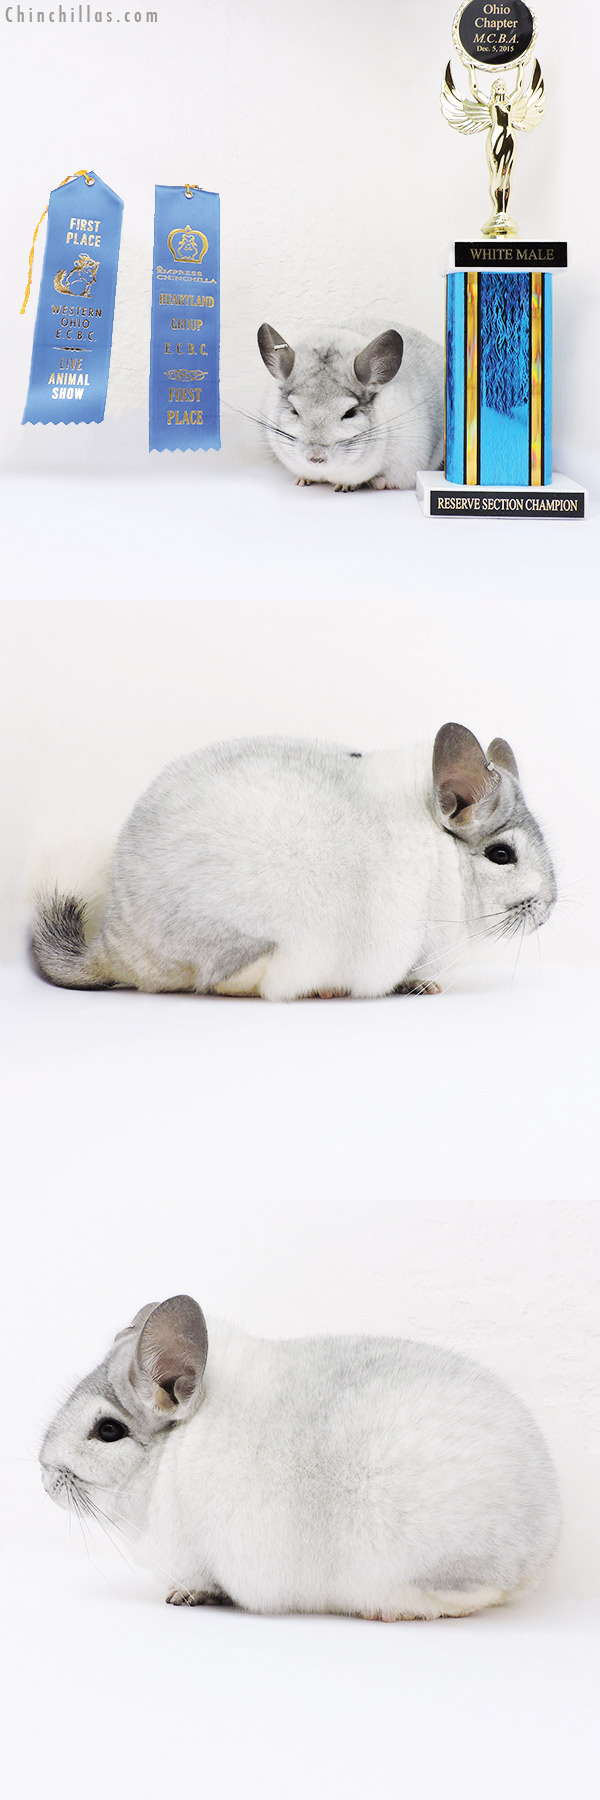 16067 Large Blocky Reserve Section Champion & 1st Place White Mosaic Male Chinchilla